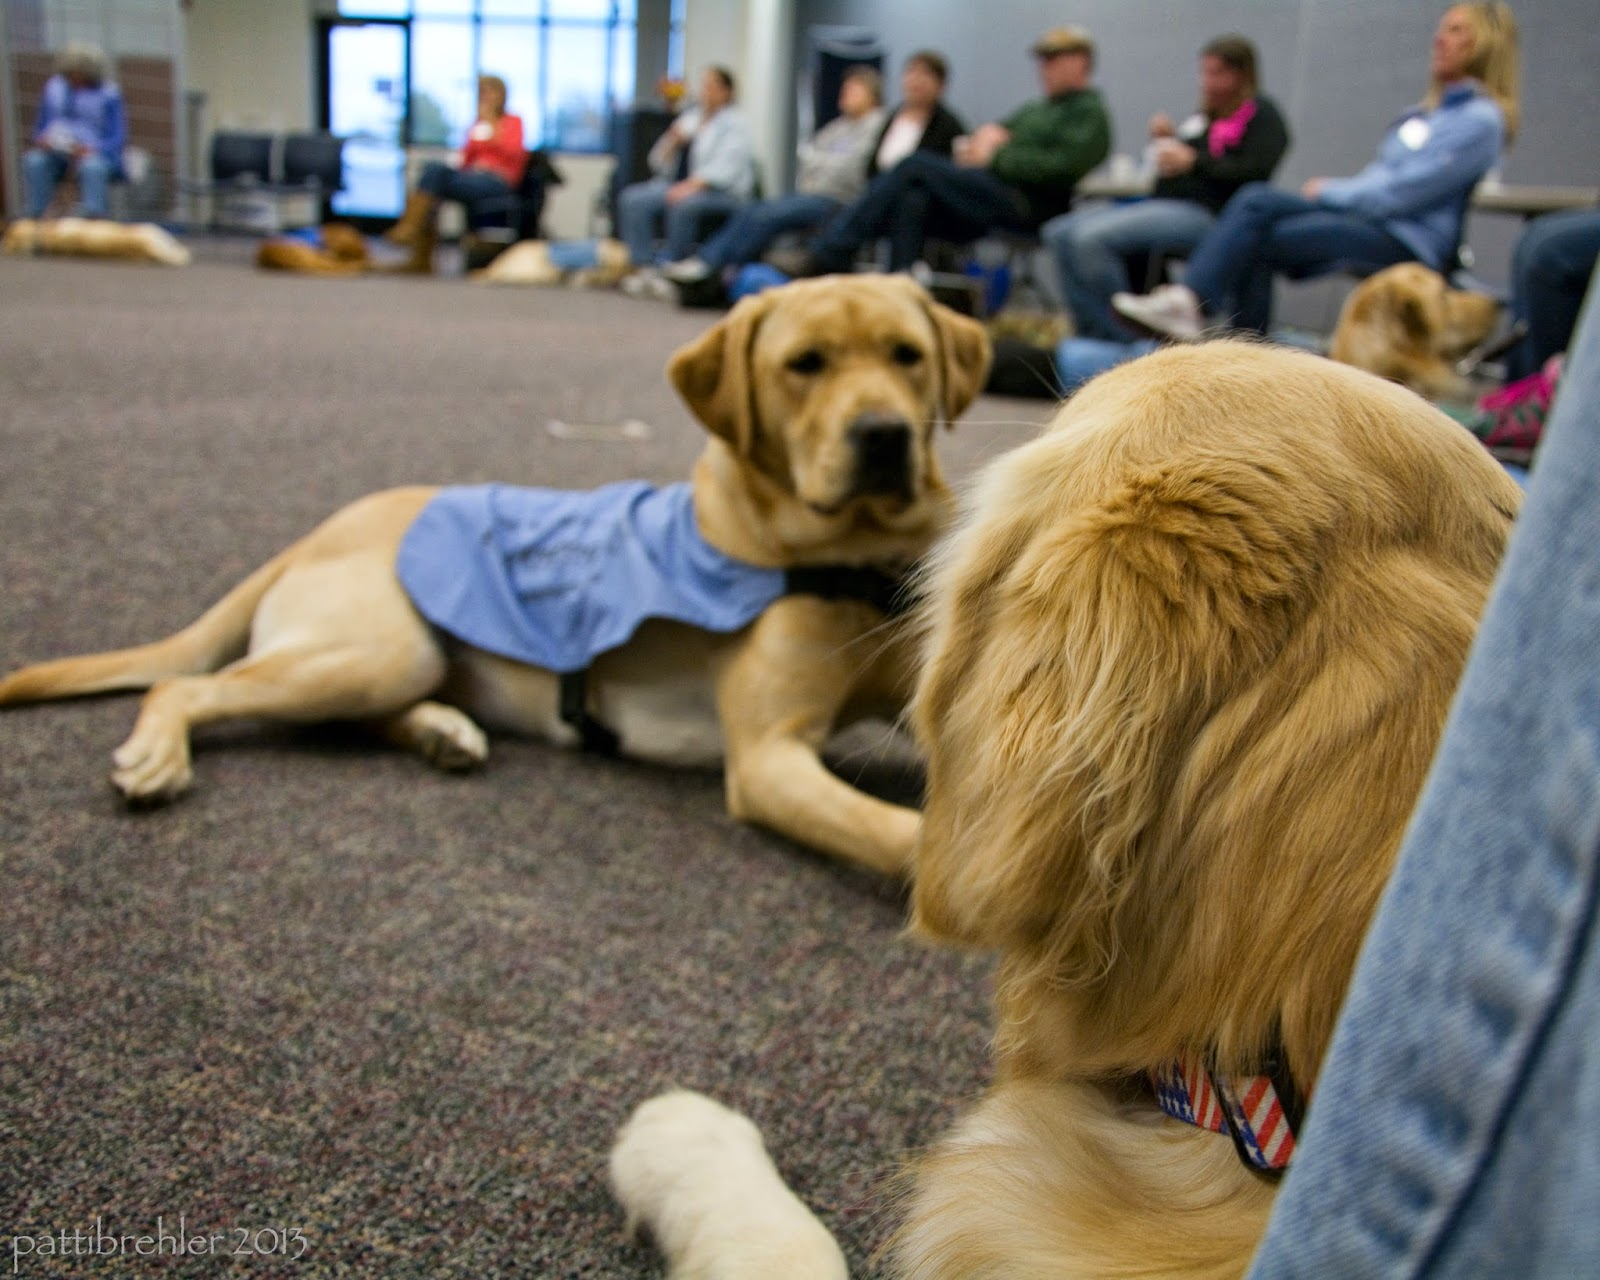 A ground level shot over the head of a gold retriever that is lying on the floor looking away from the camera. You can only see the back of his head, and part of someone's leg on the right. A yellow lab is lying down in front of the golden, facing the camera. He is wearing a baby blue working jacket. Our of focus in the background are at least eight puppy raisers sitting in folding chairs with their puppies lying down on the floor in front of them.